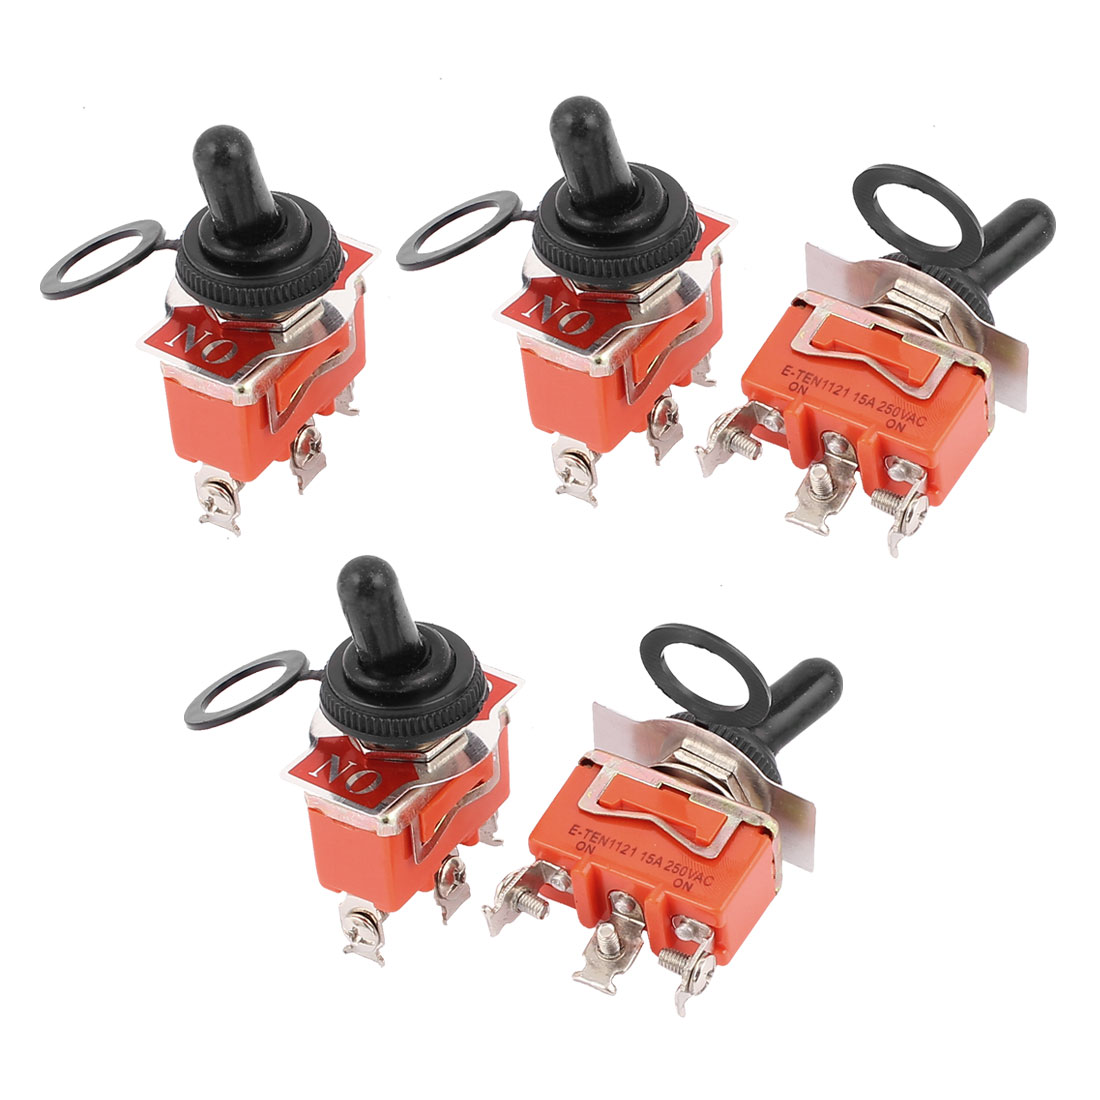 5 Pcs AC250V 15A SPDT ON-ON 2 Positions 3 Terminals Latching Toggle Switch w Cap